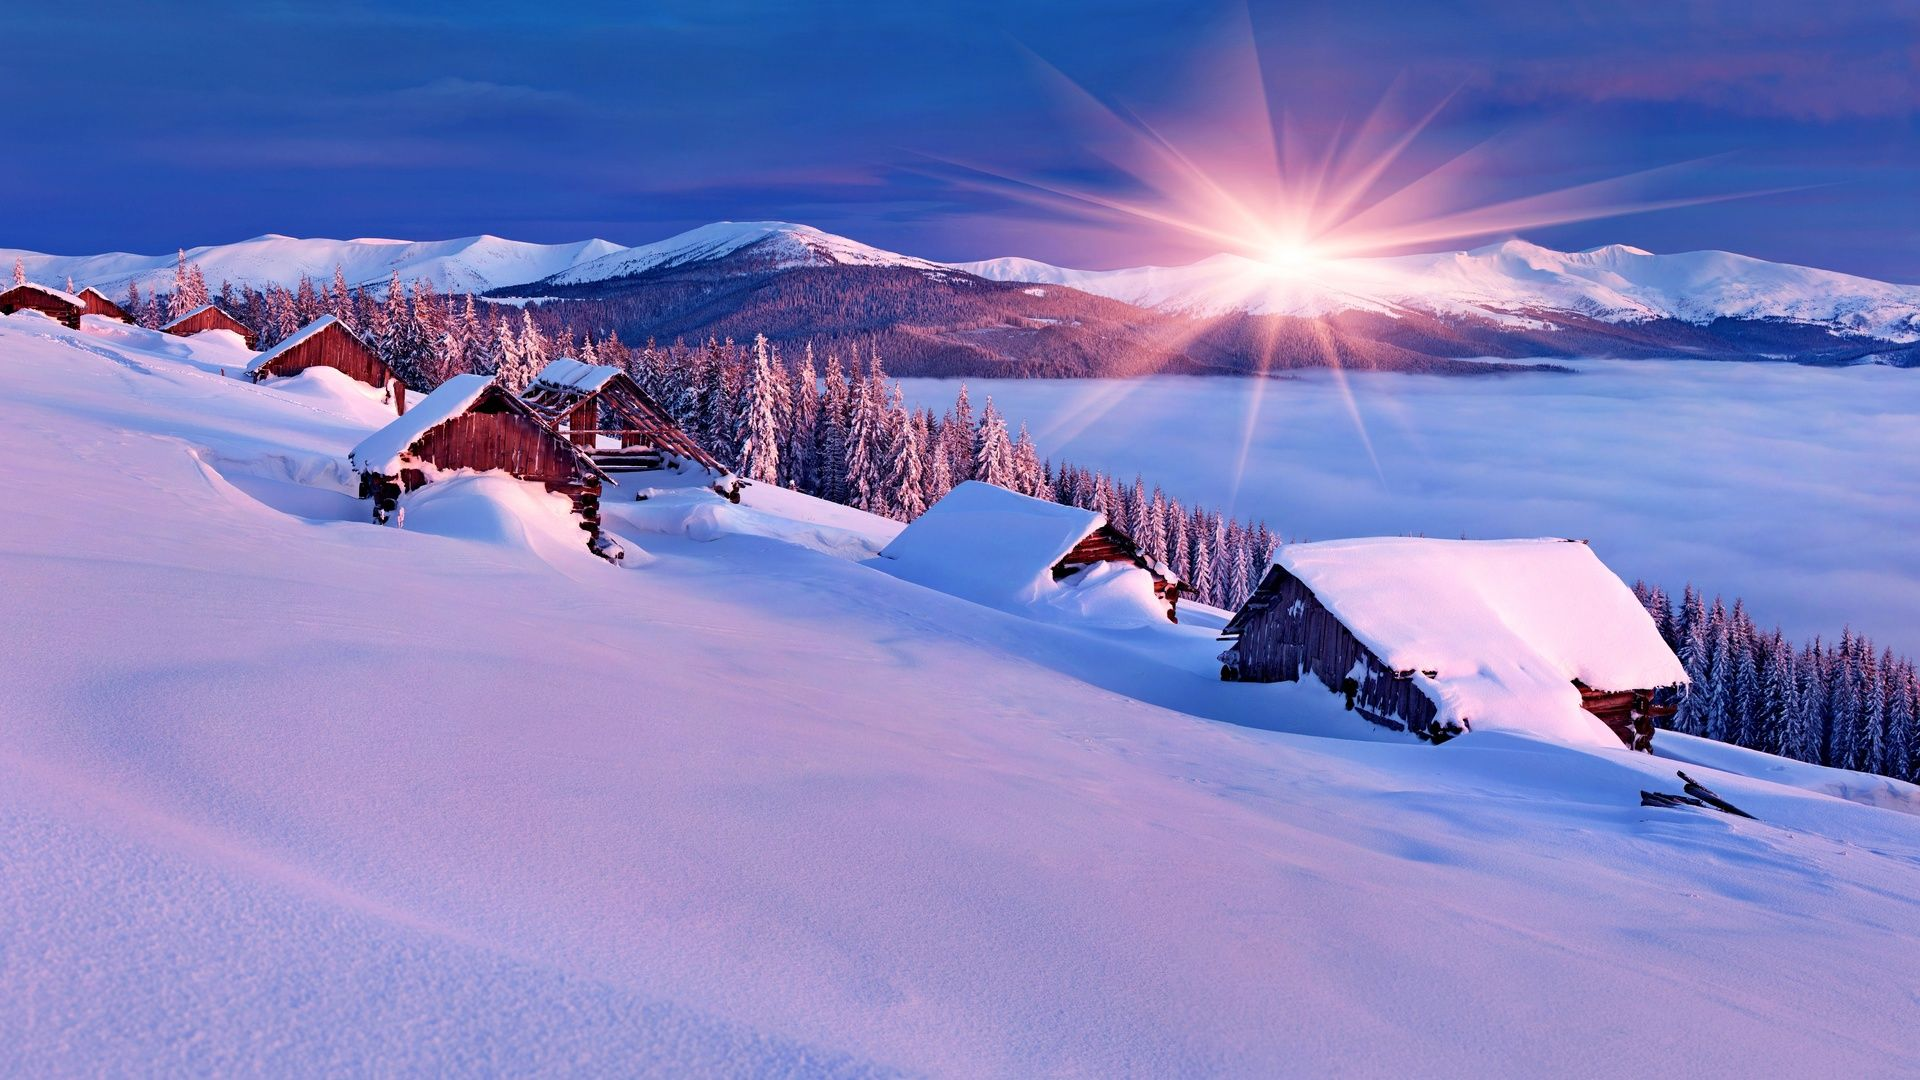 Winter Snow Scenes wallpaper and themes